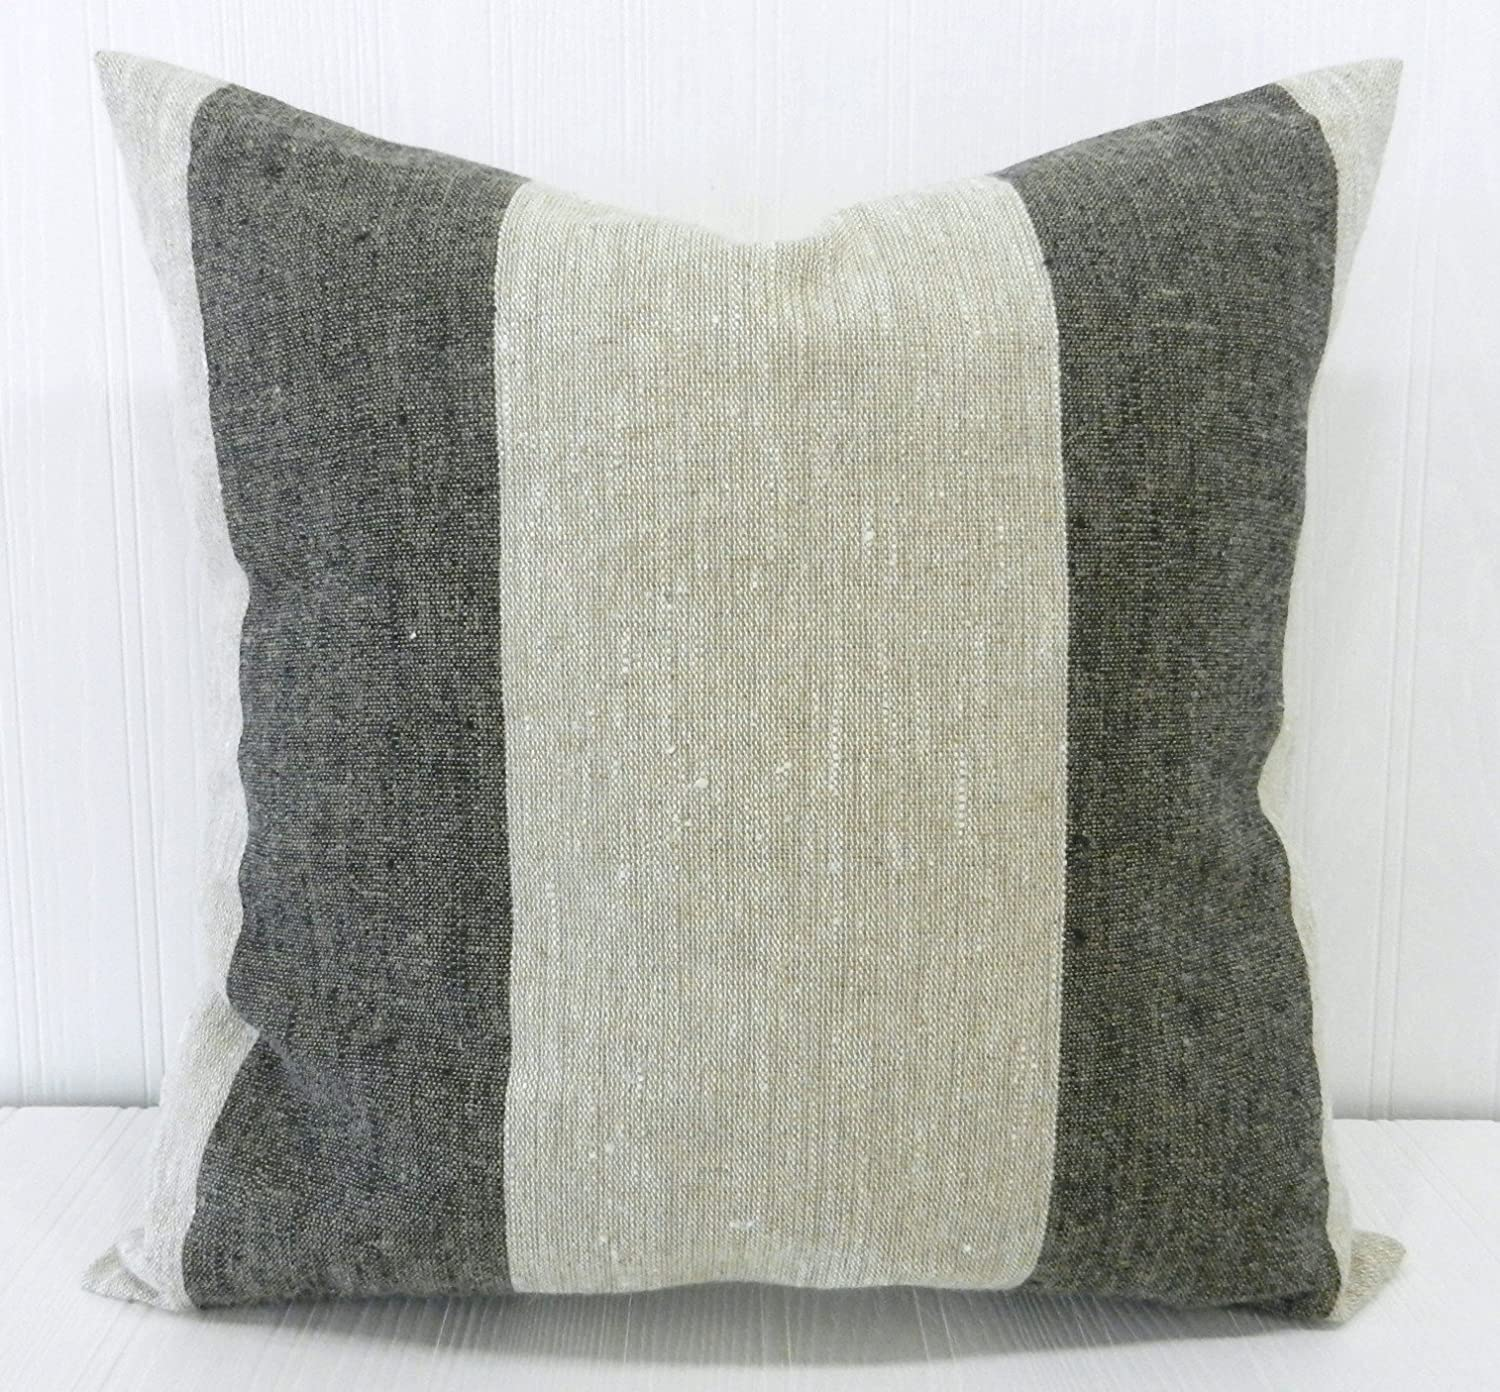 Pillow Cover 18x18 Farmhouse Linen Natural and Black Wide Stripe